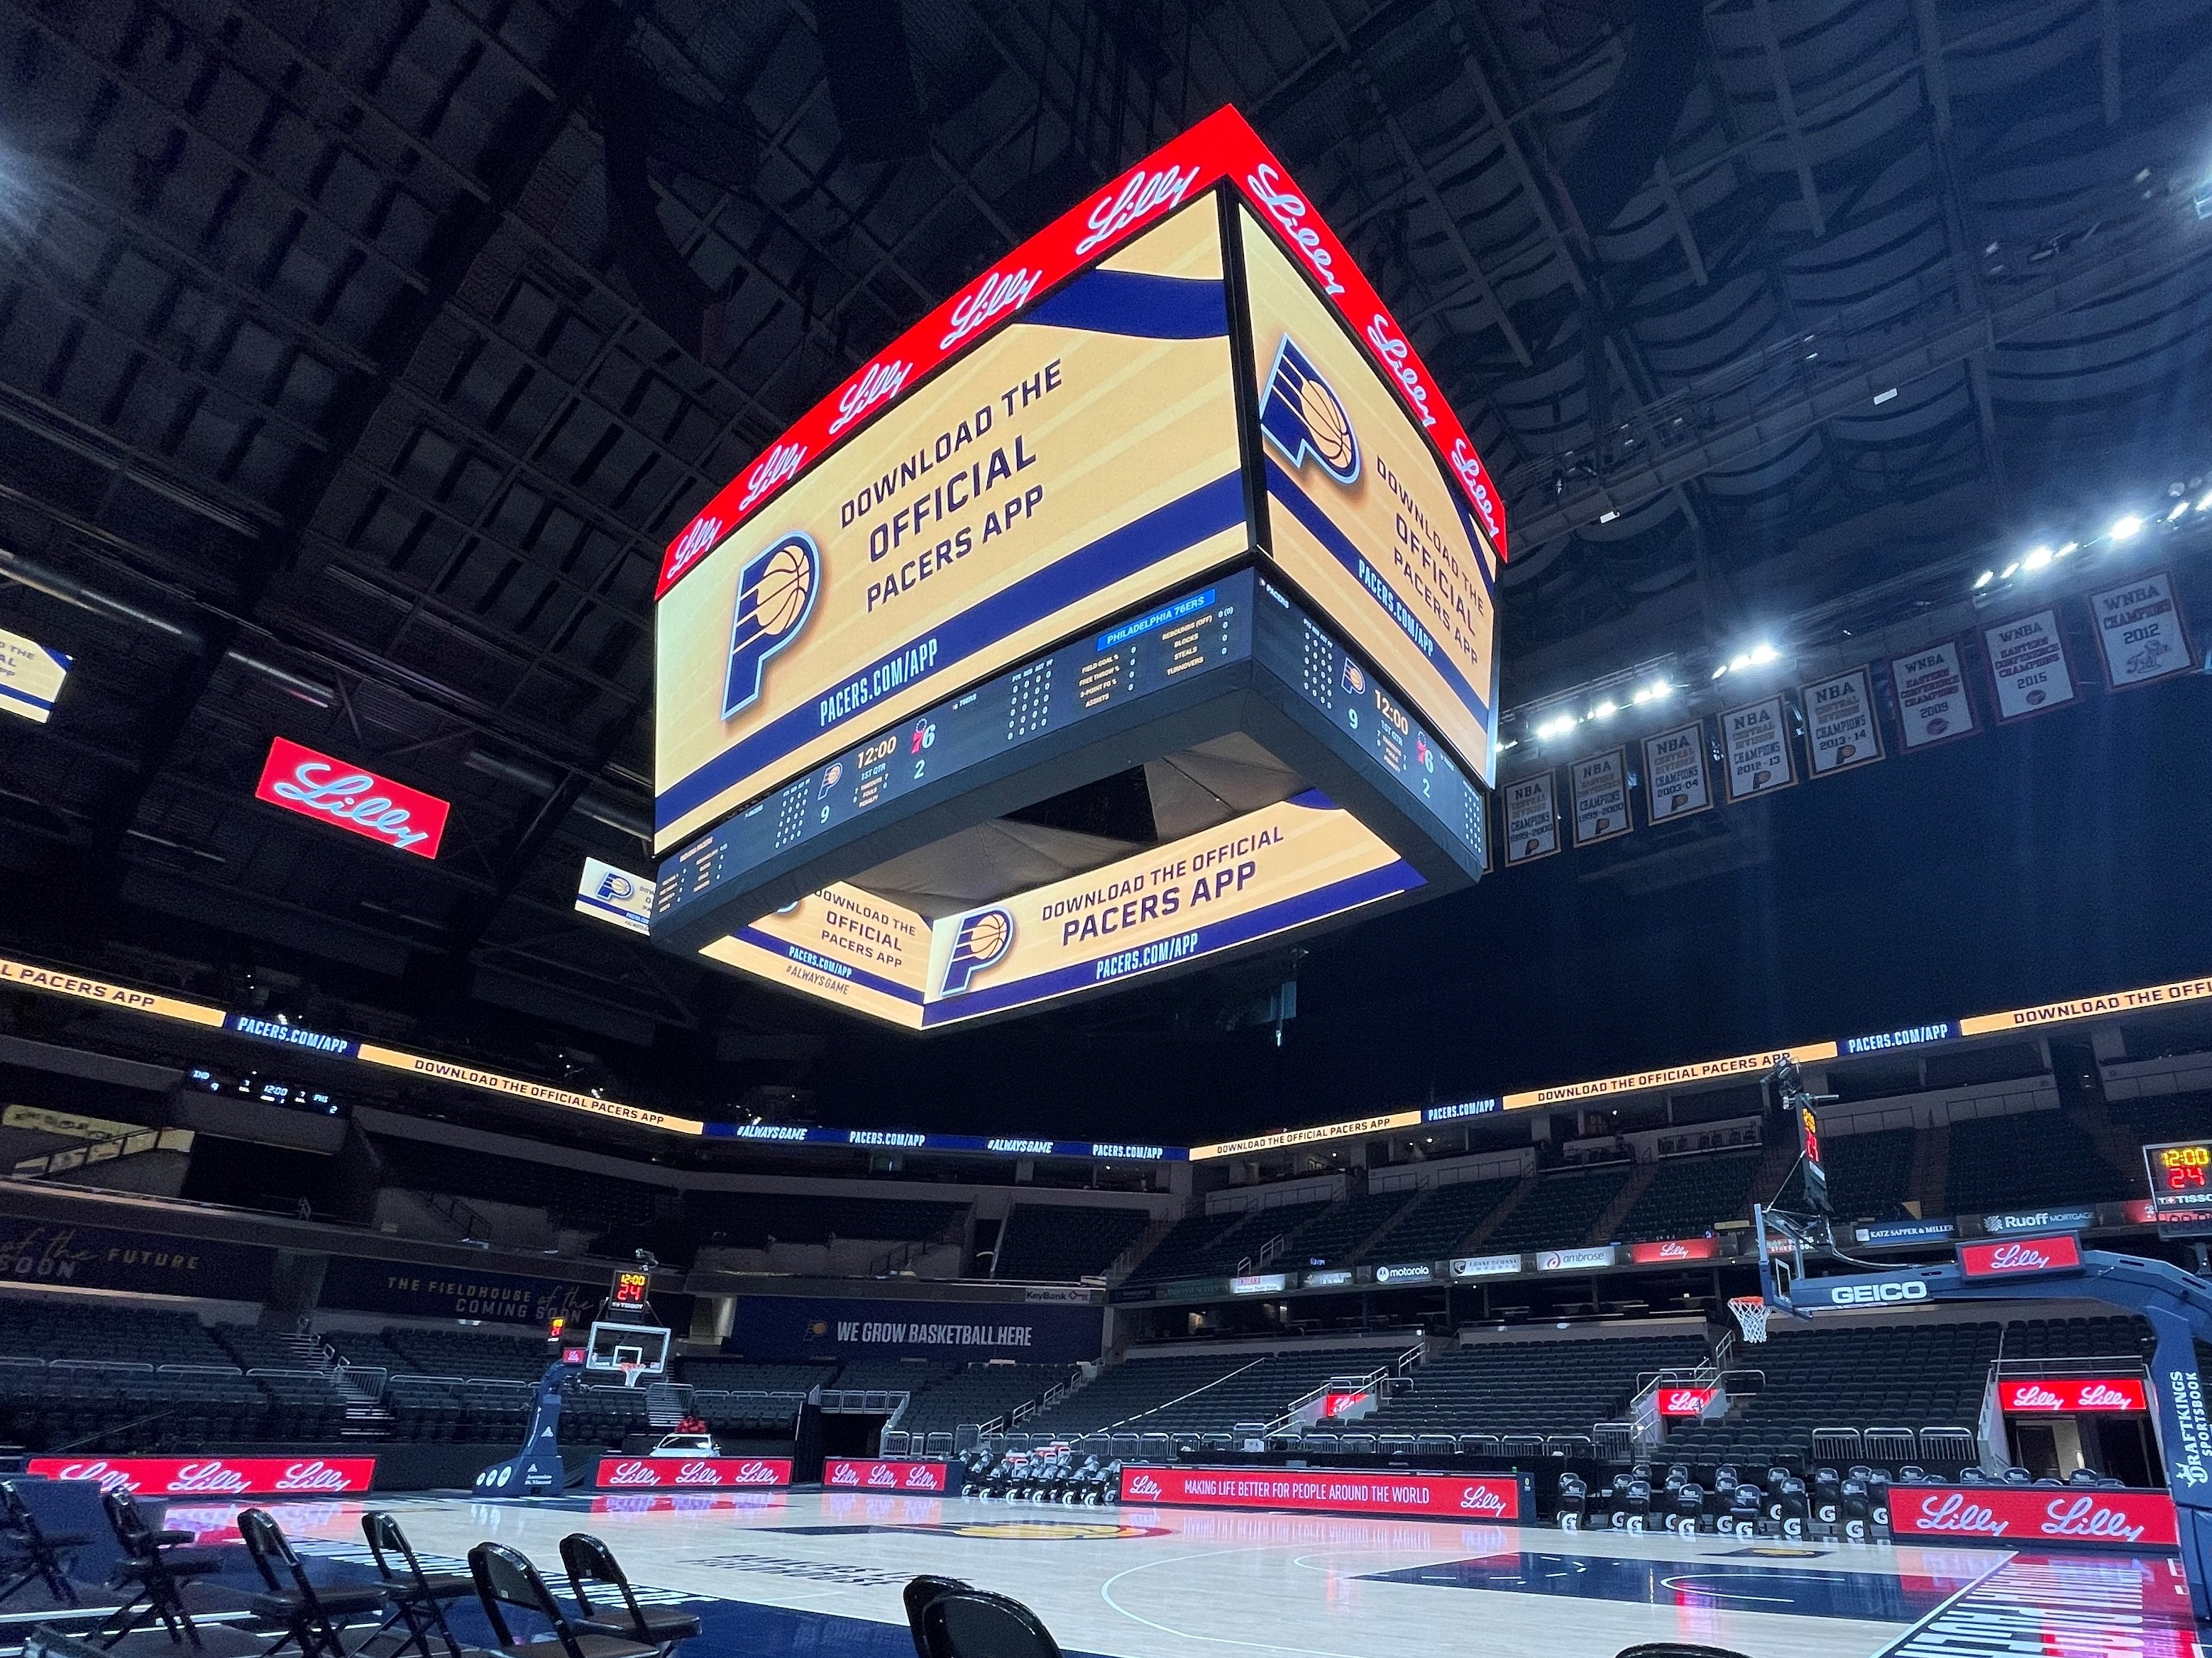 Bankers Life Fieldhouse, Phase 1 Renovations